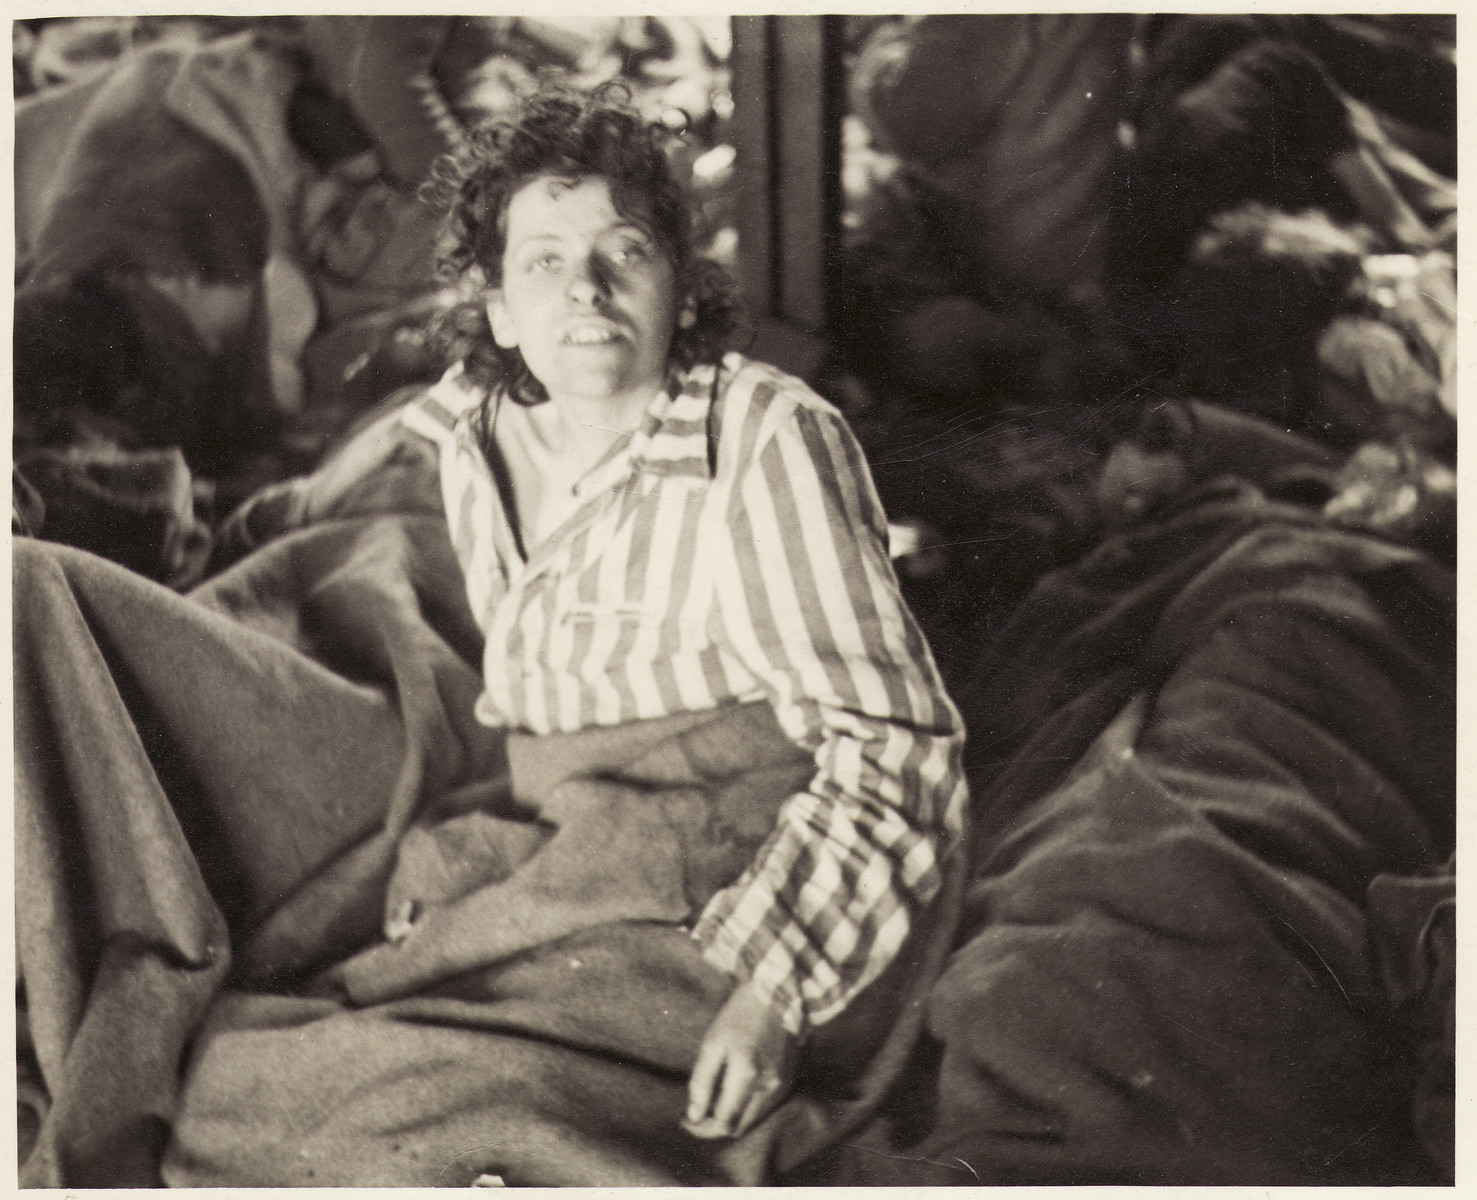 A female survivor and other women lie, covered in blankets, on the floor of a barracks in Bergen-Belsen concentration camp after liberation.